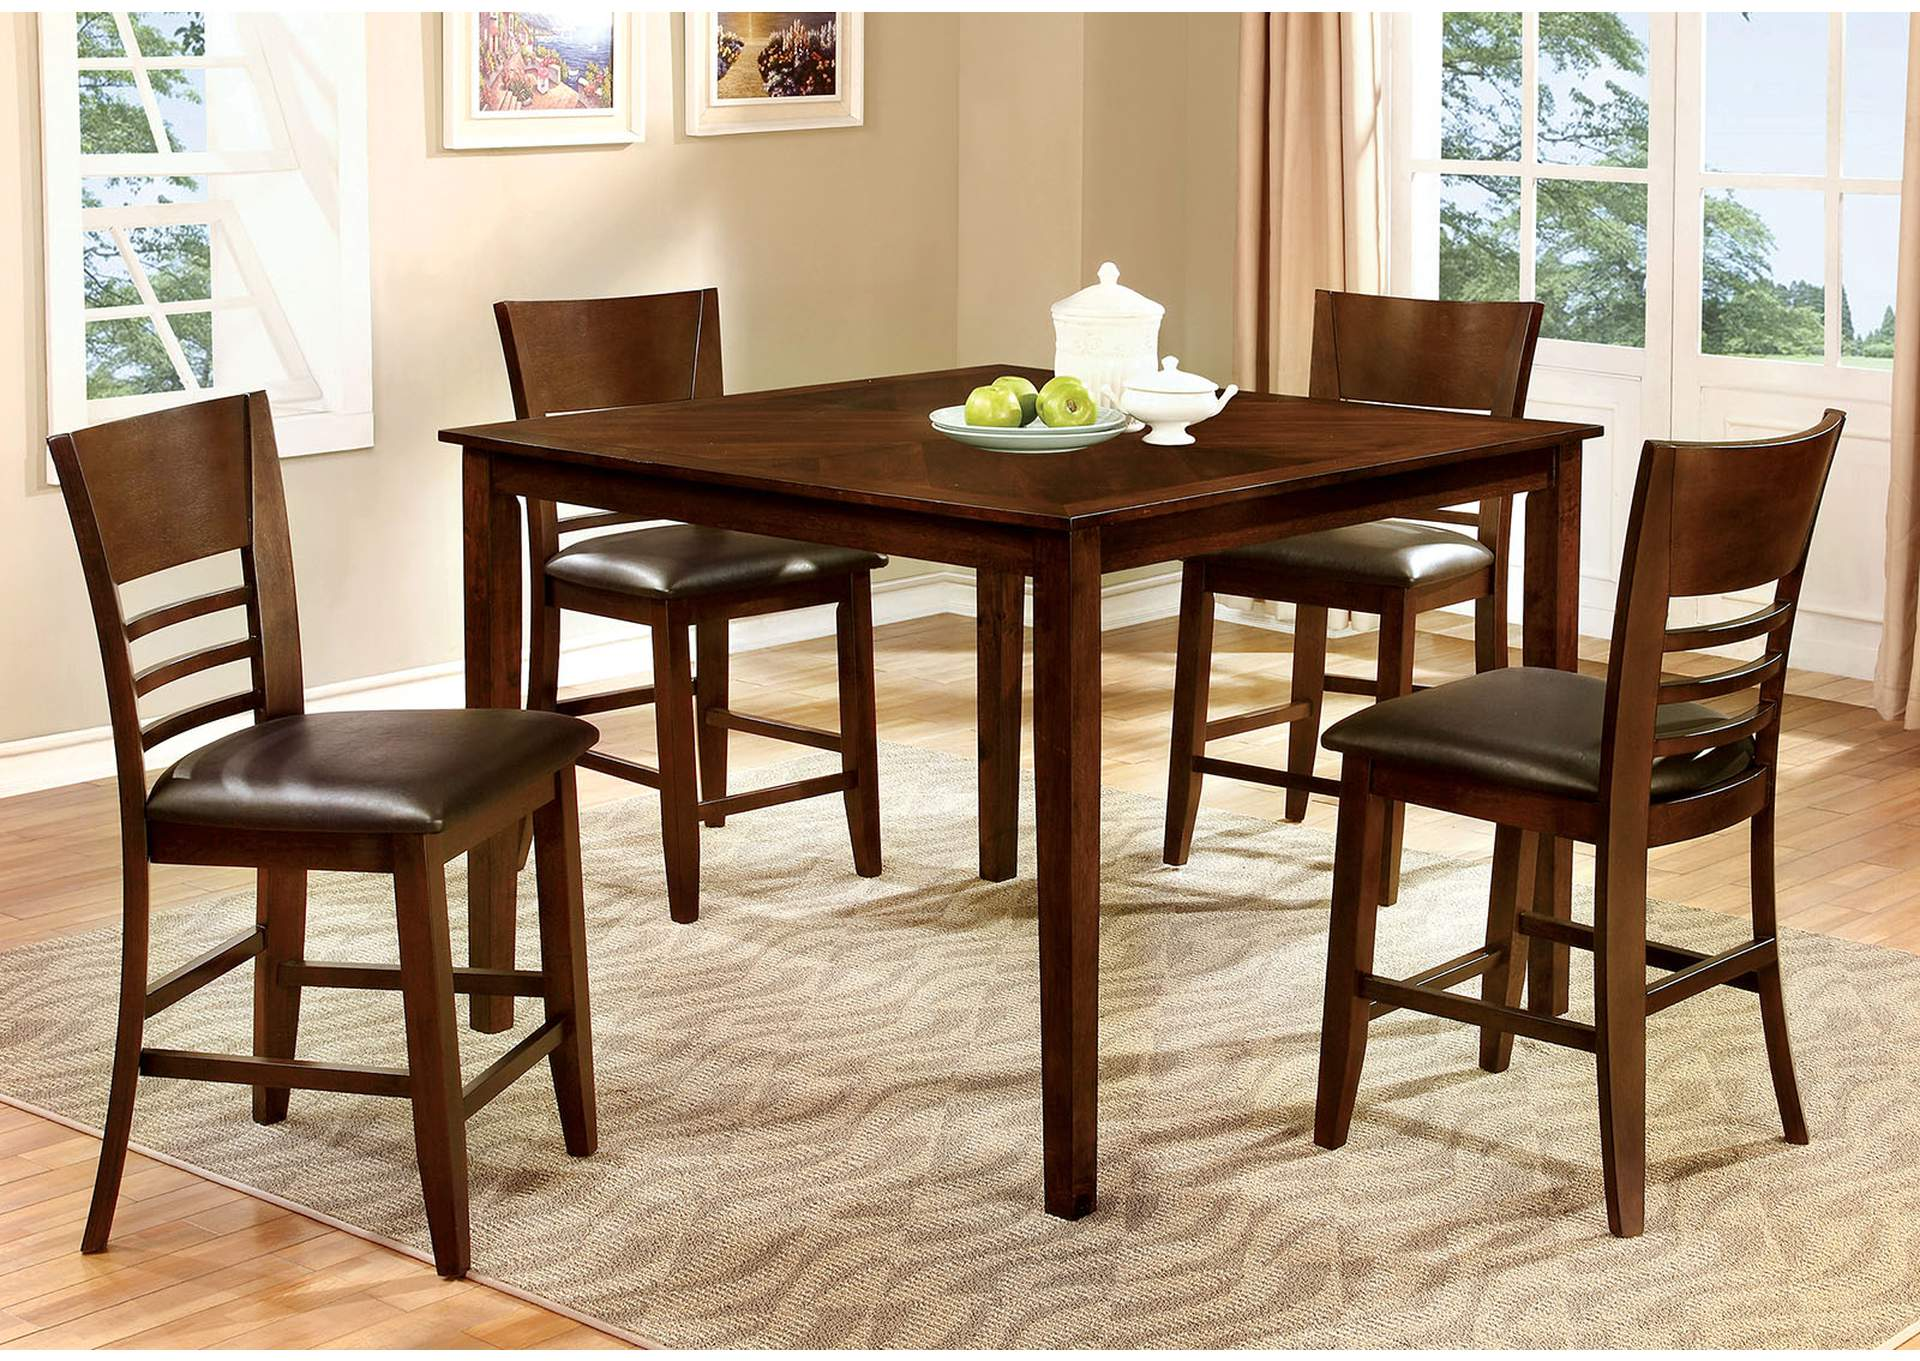 Hillsview II Brown Cherry 5 PC. Counter Height Table Set,Furniture of America